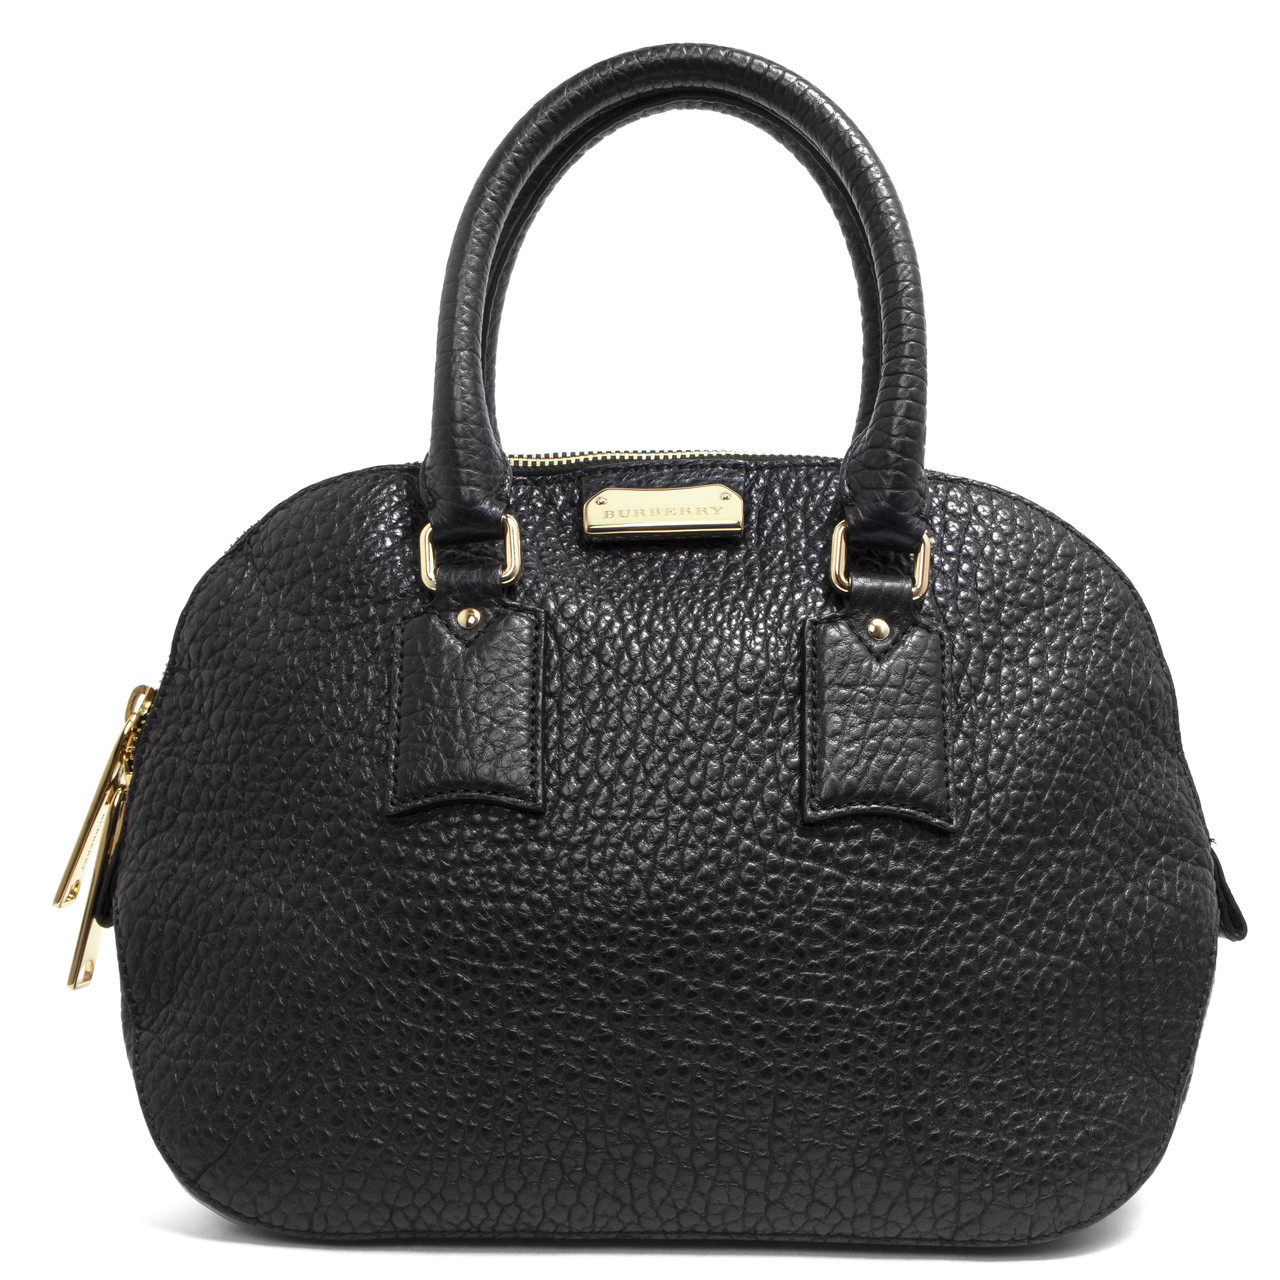 f8c97f5cf2e Burberry Black Heritage Grain Leather Small Orchard Bowling Bag ...